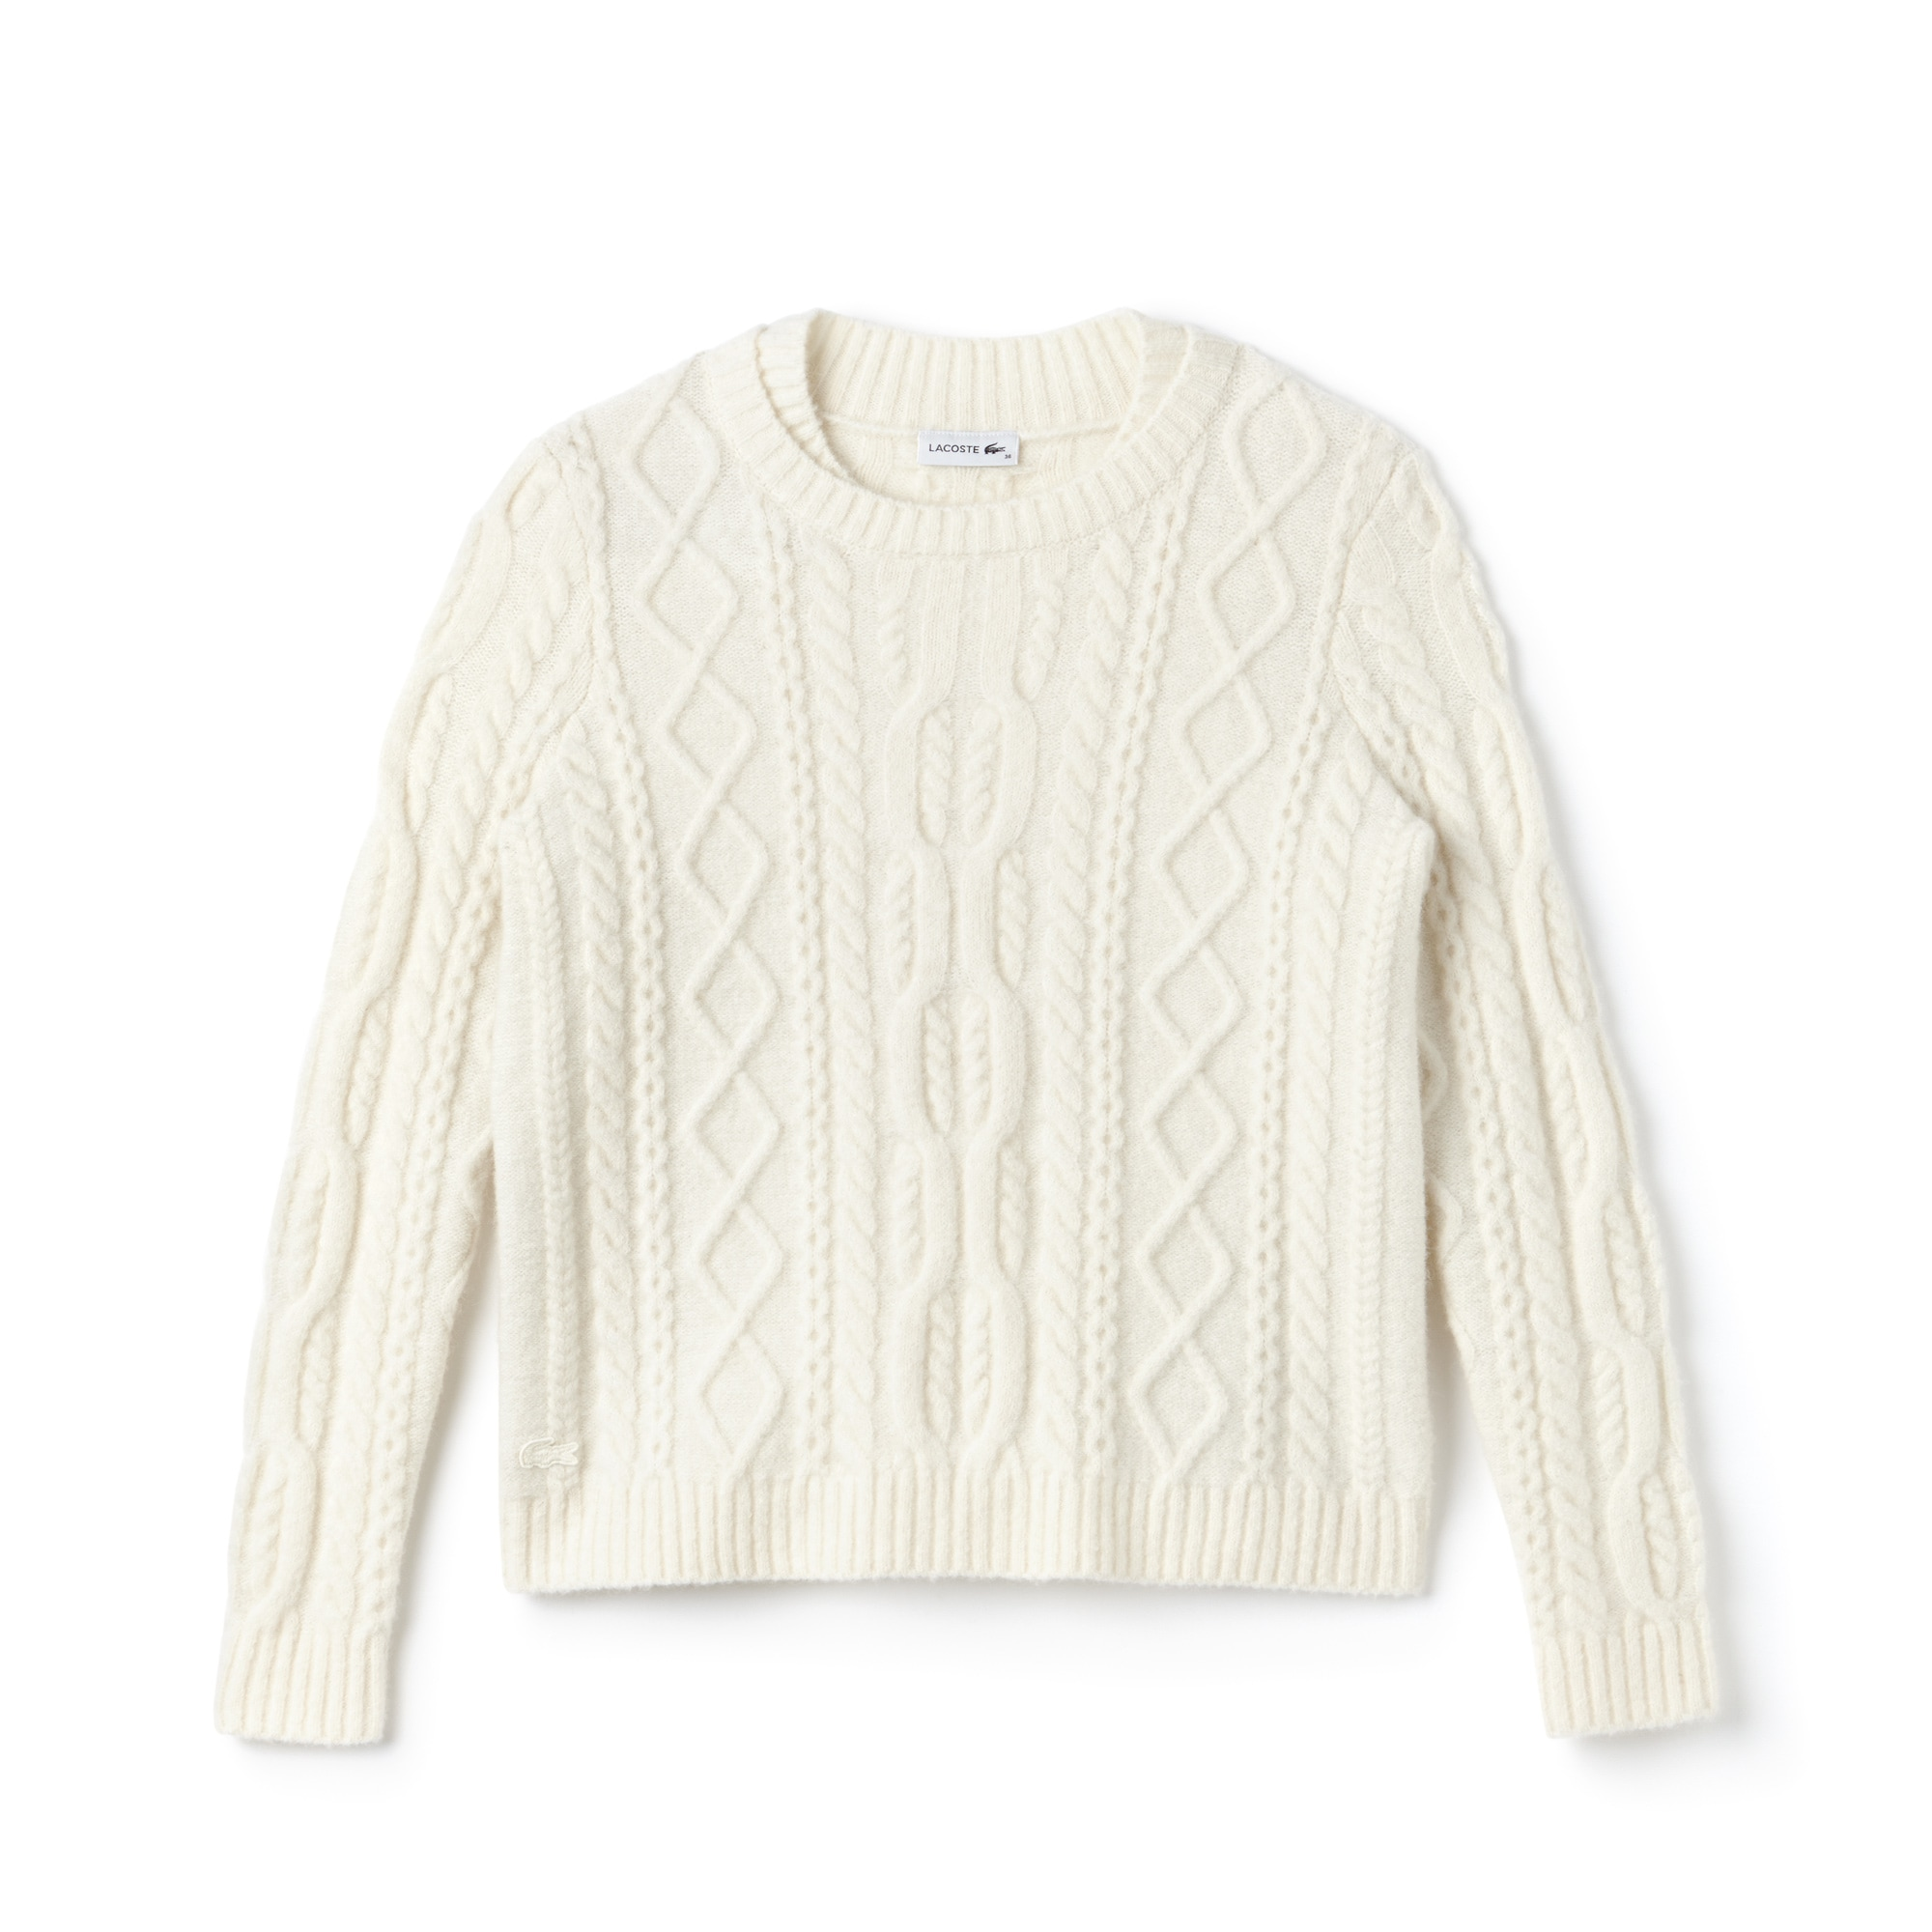 Lacoste WOMEN'S DOUBLE NECK ALPAGA AND WOOL CABLE KNIT SWEATER